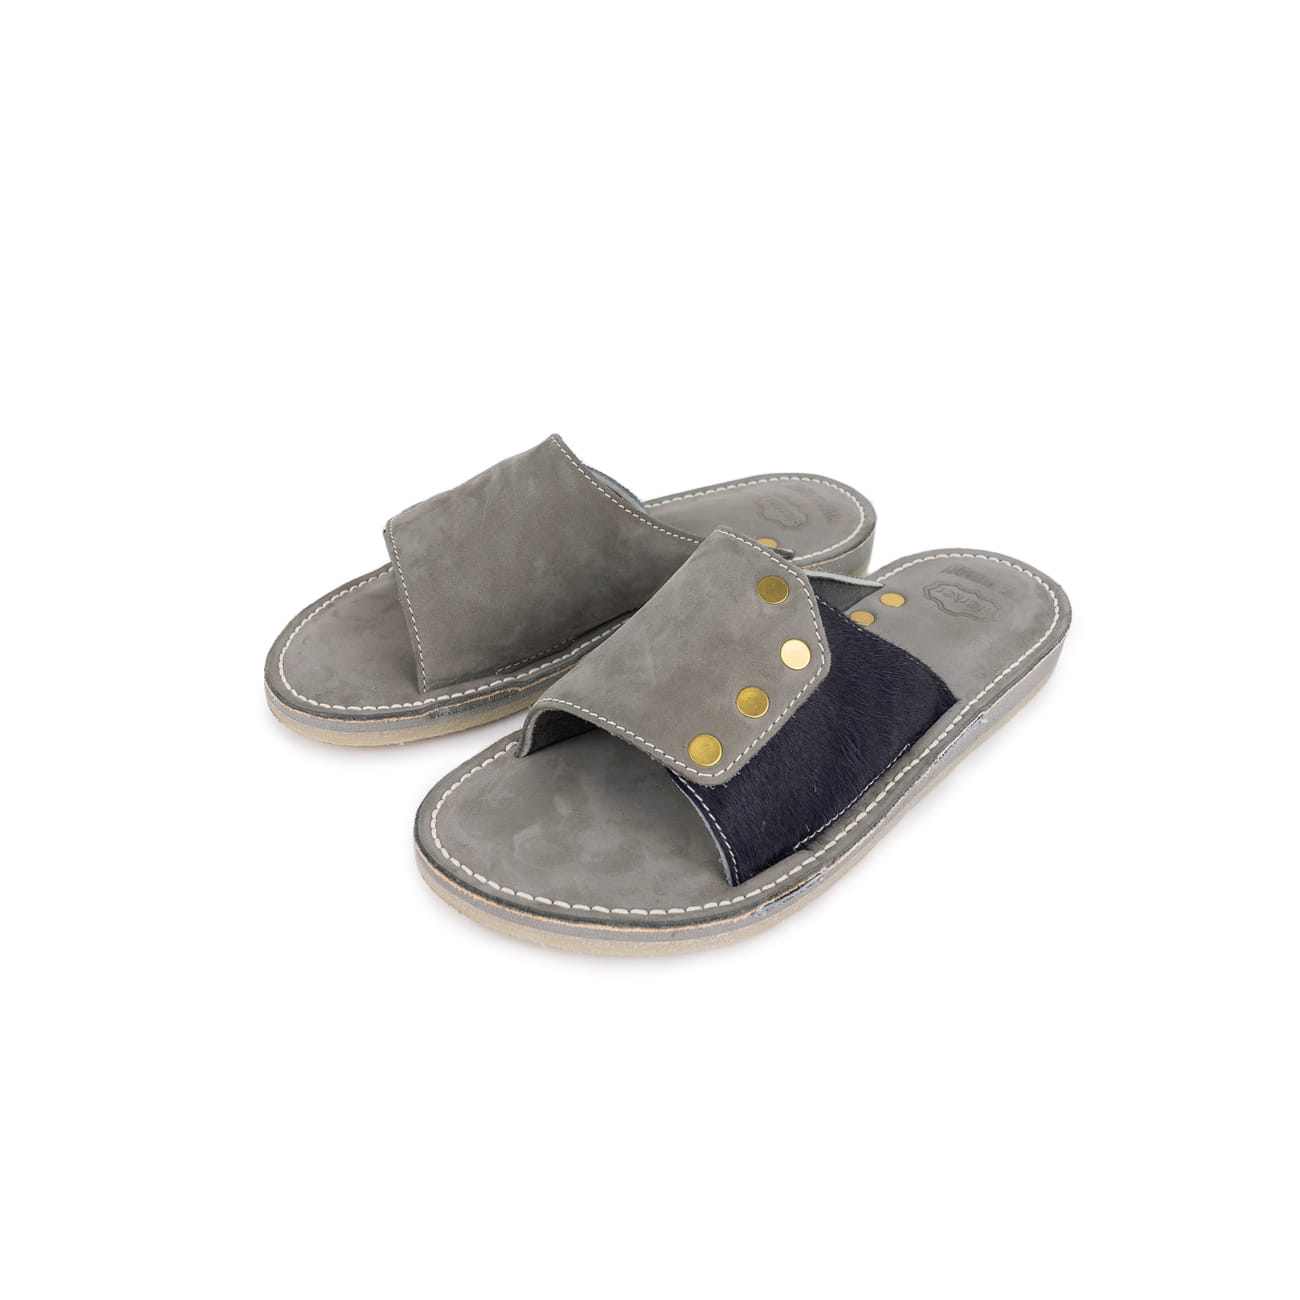 Slide Brass Rivet Sandal